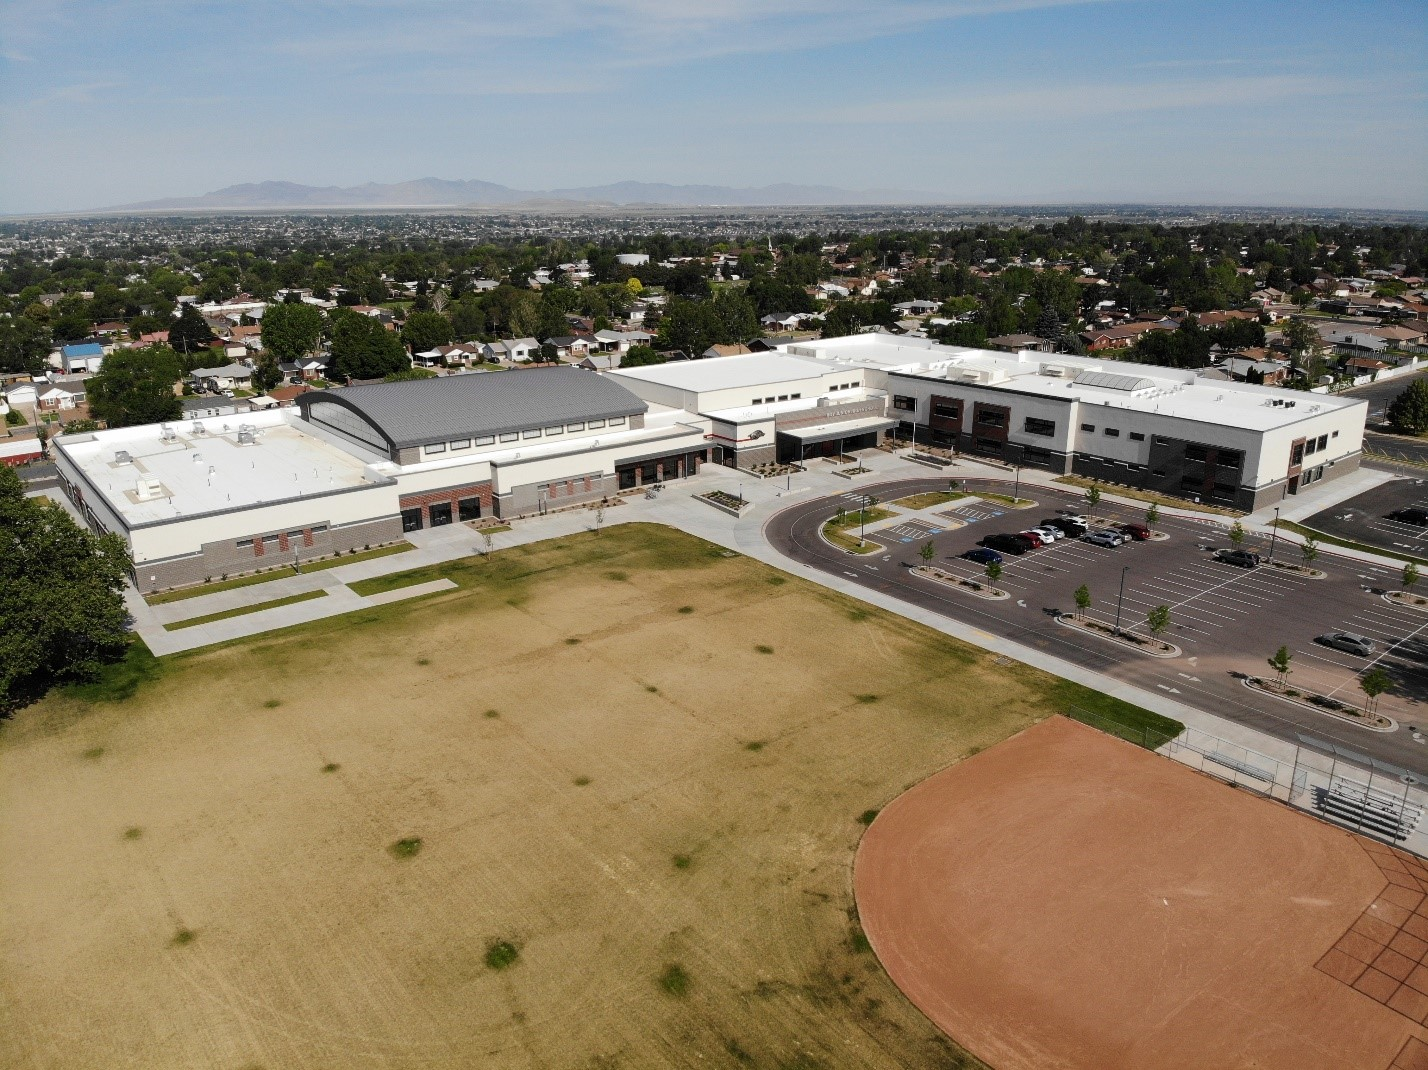 Aerial photo of Roy Jr High